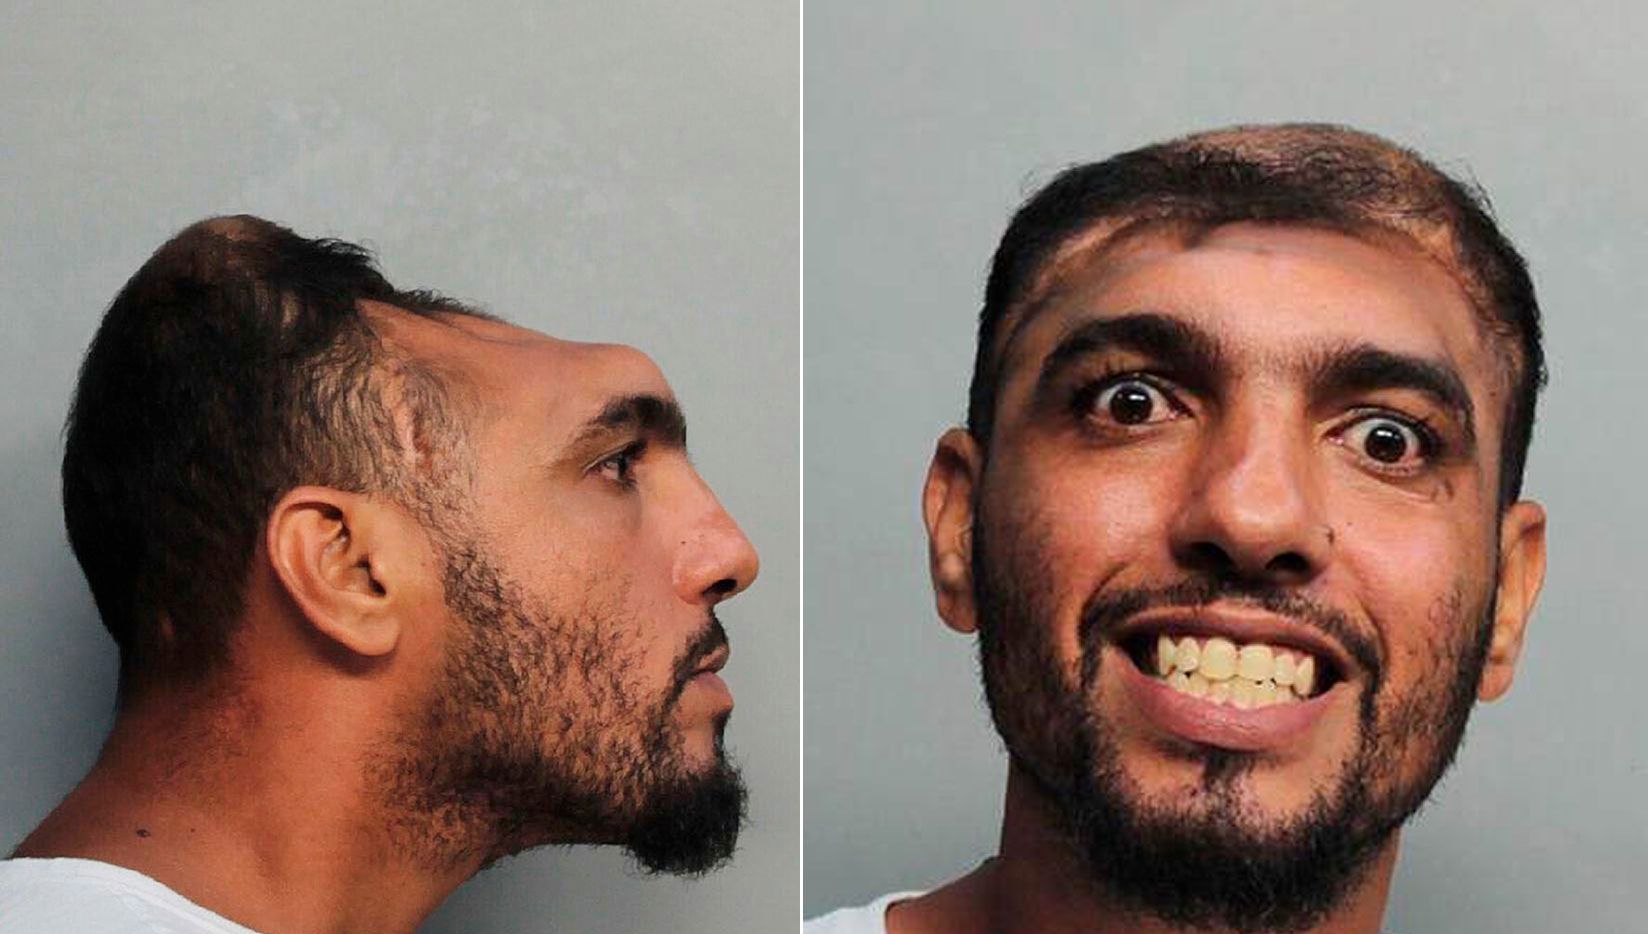 This Monday, Oct. 17, 2016, photo provided by the Miami-Dade Corrections and Rehabilitation Department shows Carlos Rodriguez, who is facing arson and attempted first-degree murder charges. (Miami-Dade Corrections and Rehabilitation Department via AP)